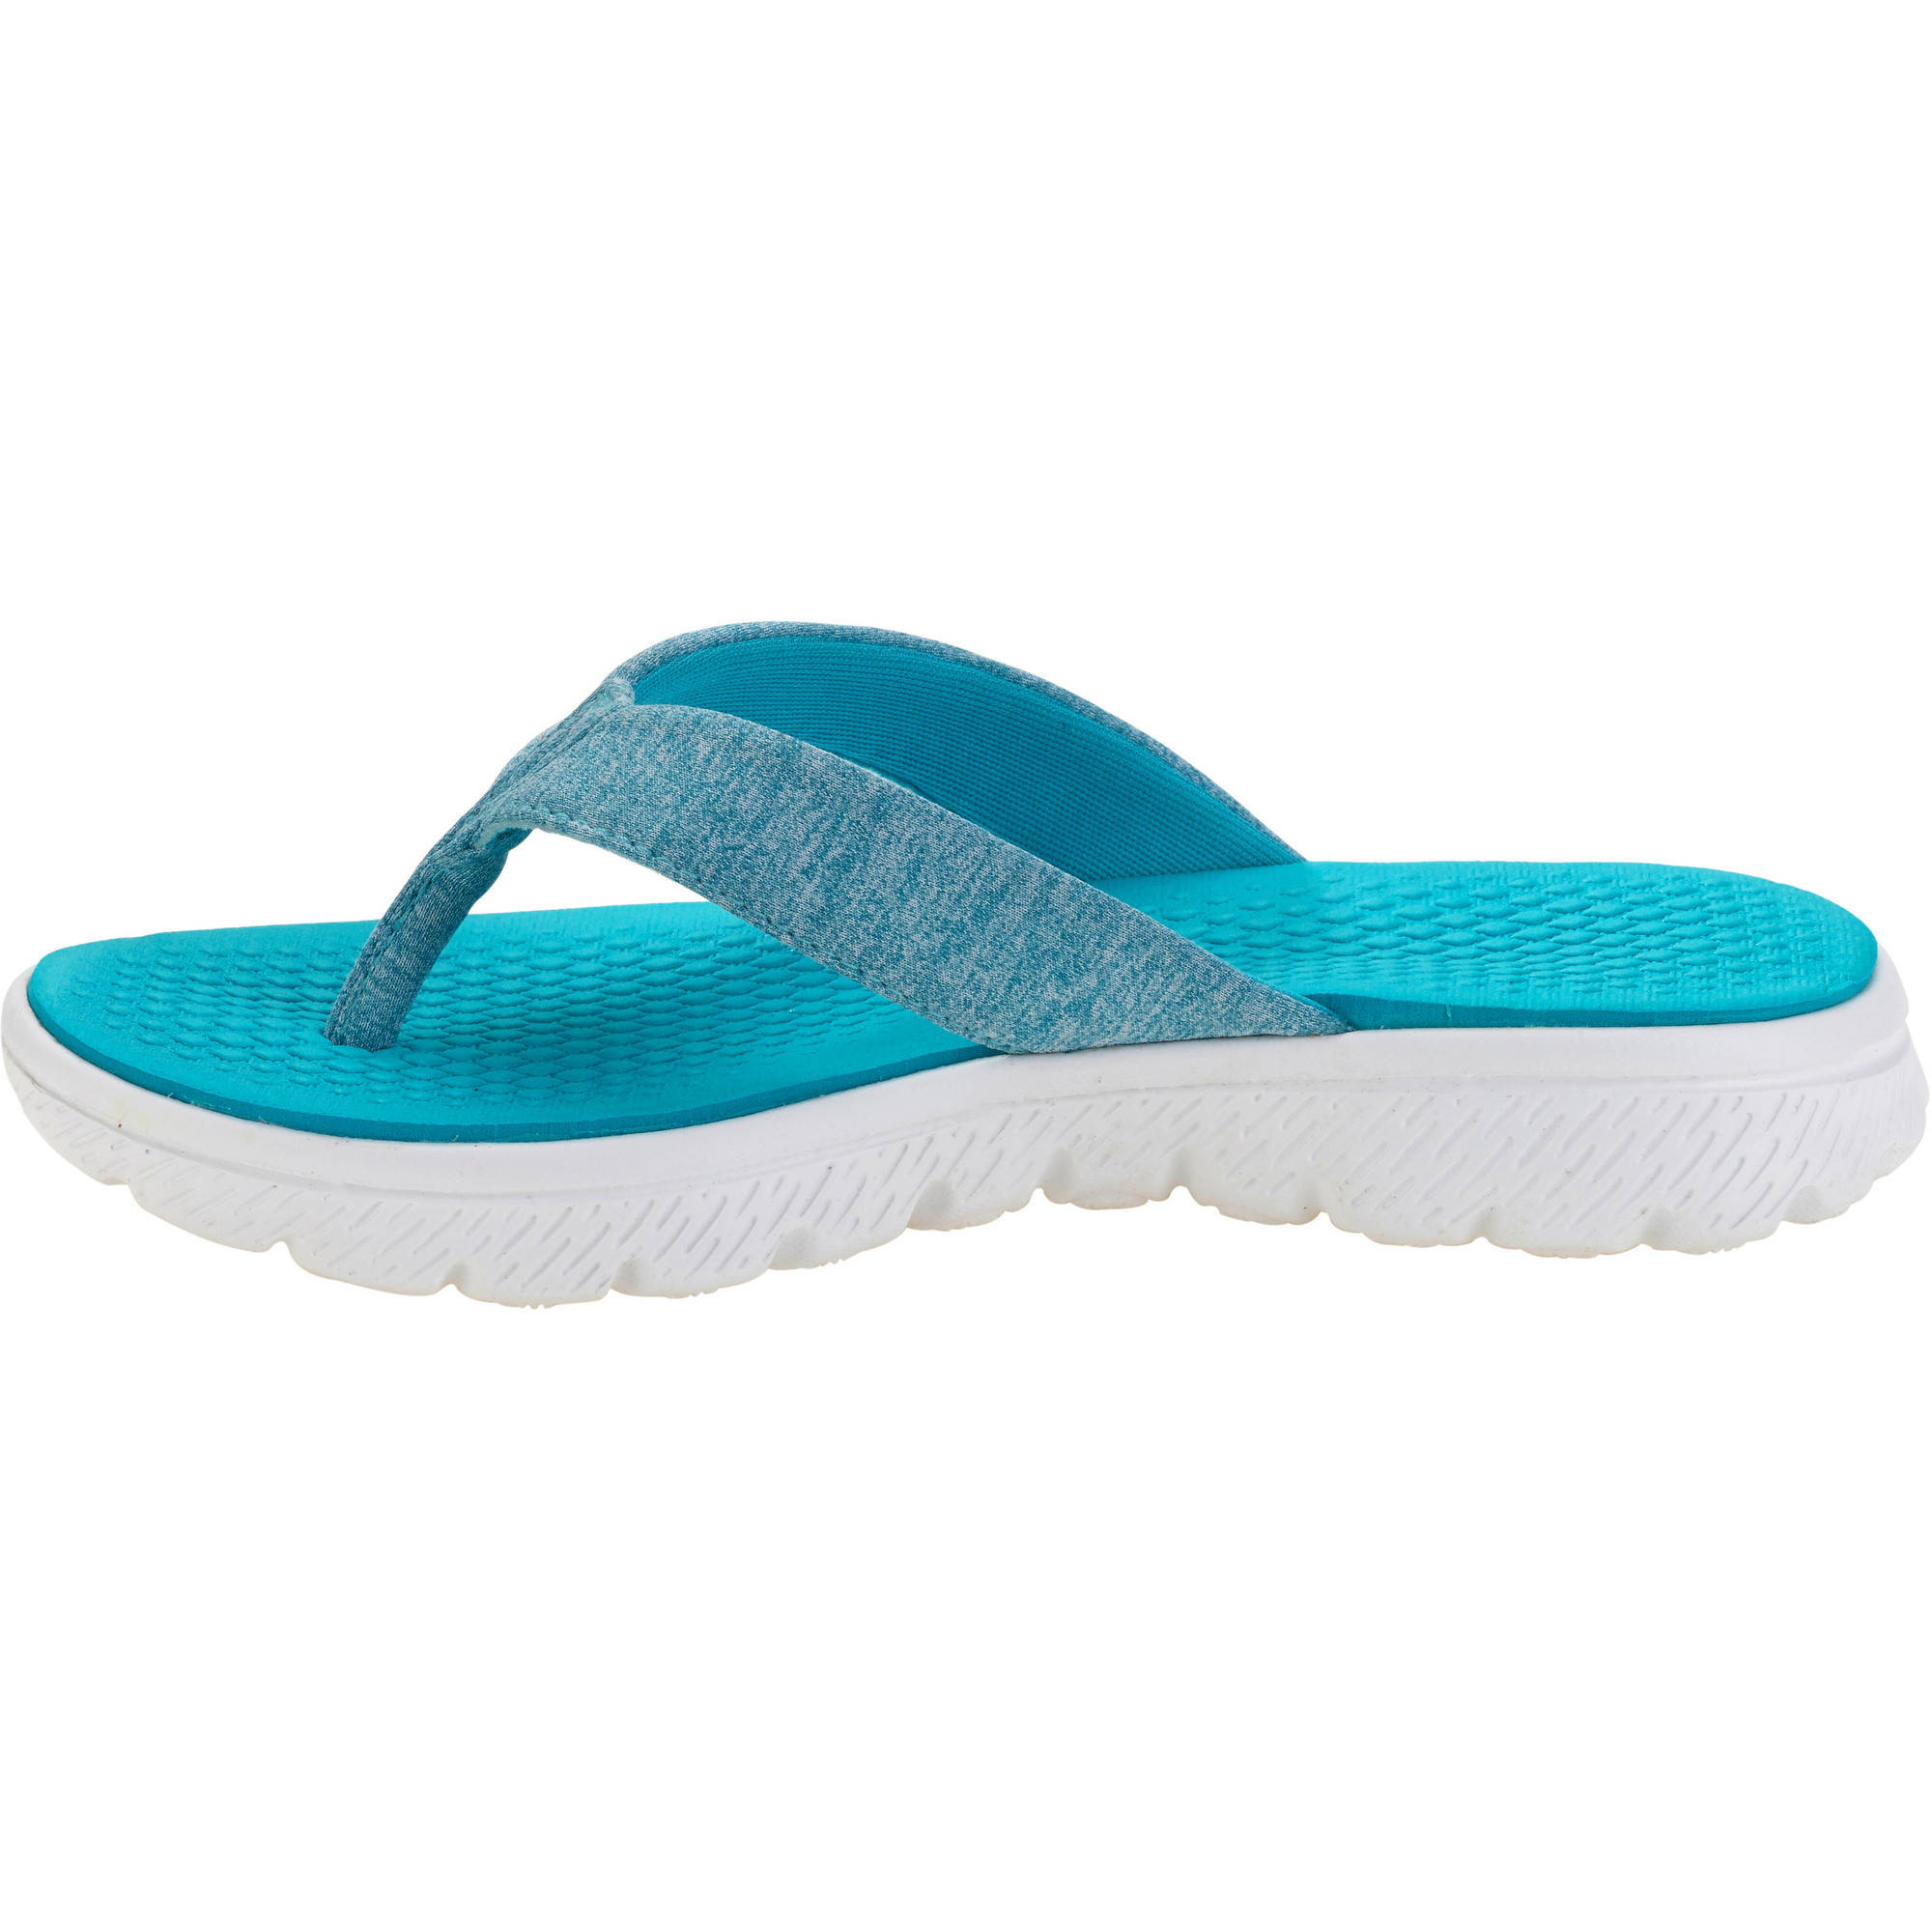 Women's Beach Comfort Sport Sandals Economical, stylish, and eye-catching shoes